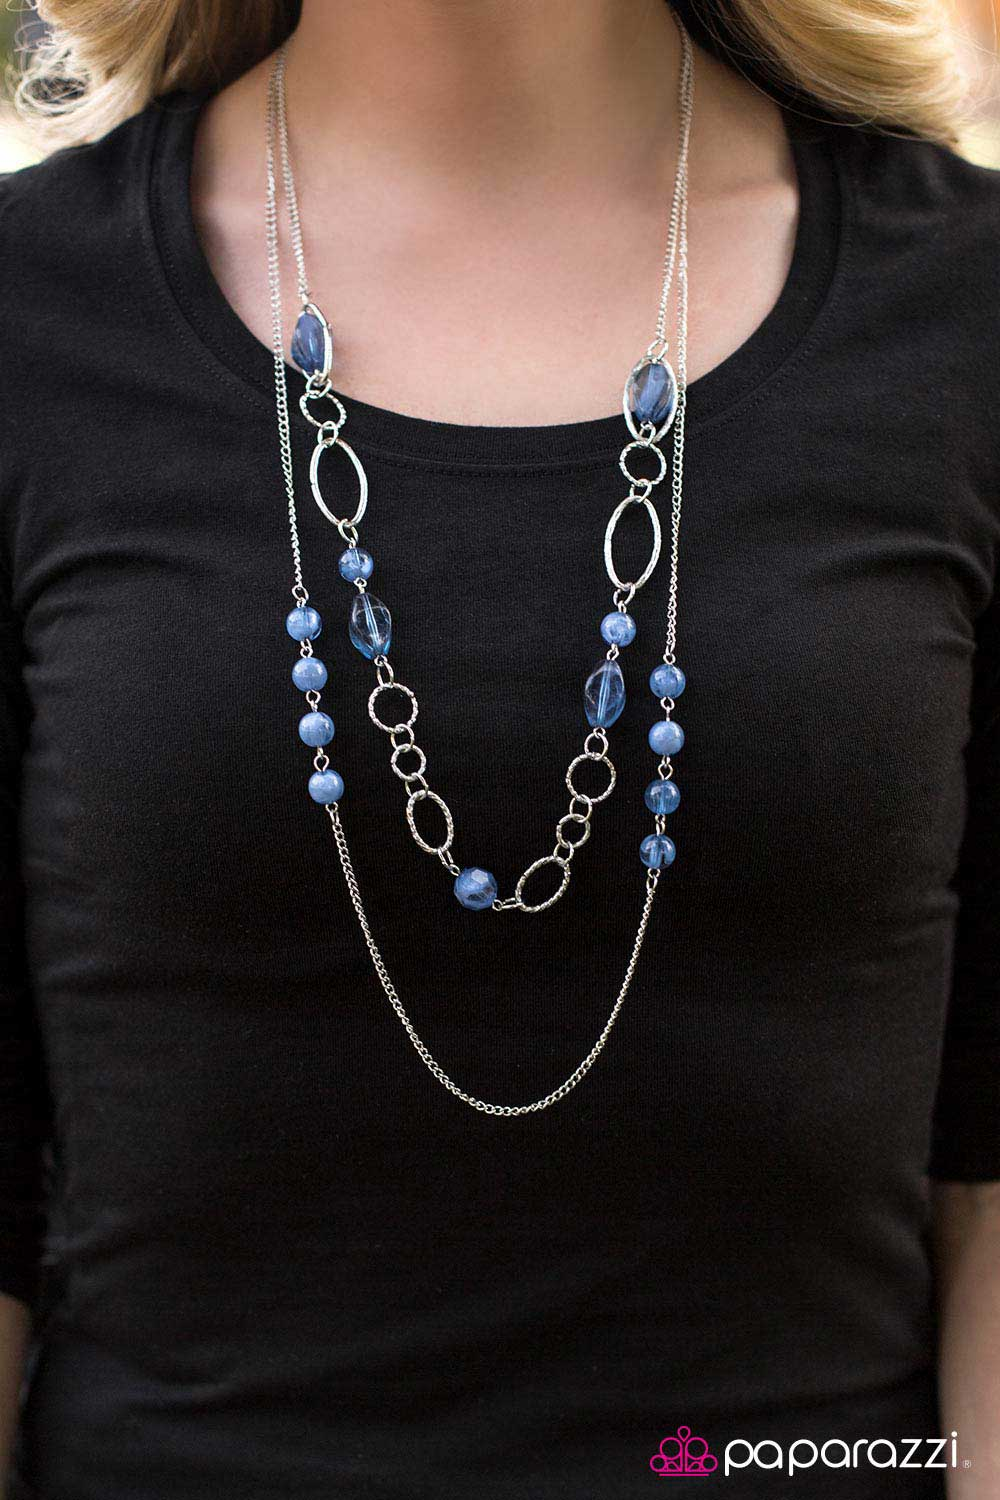 Touch The Clouds - Blue - Paparazzi necklace